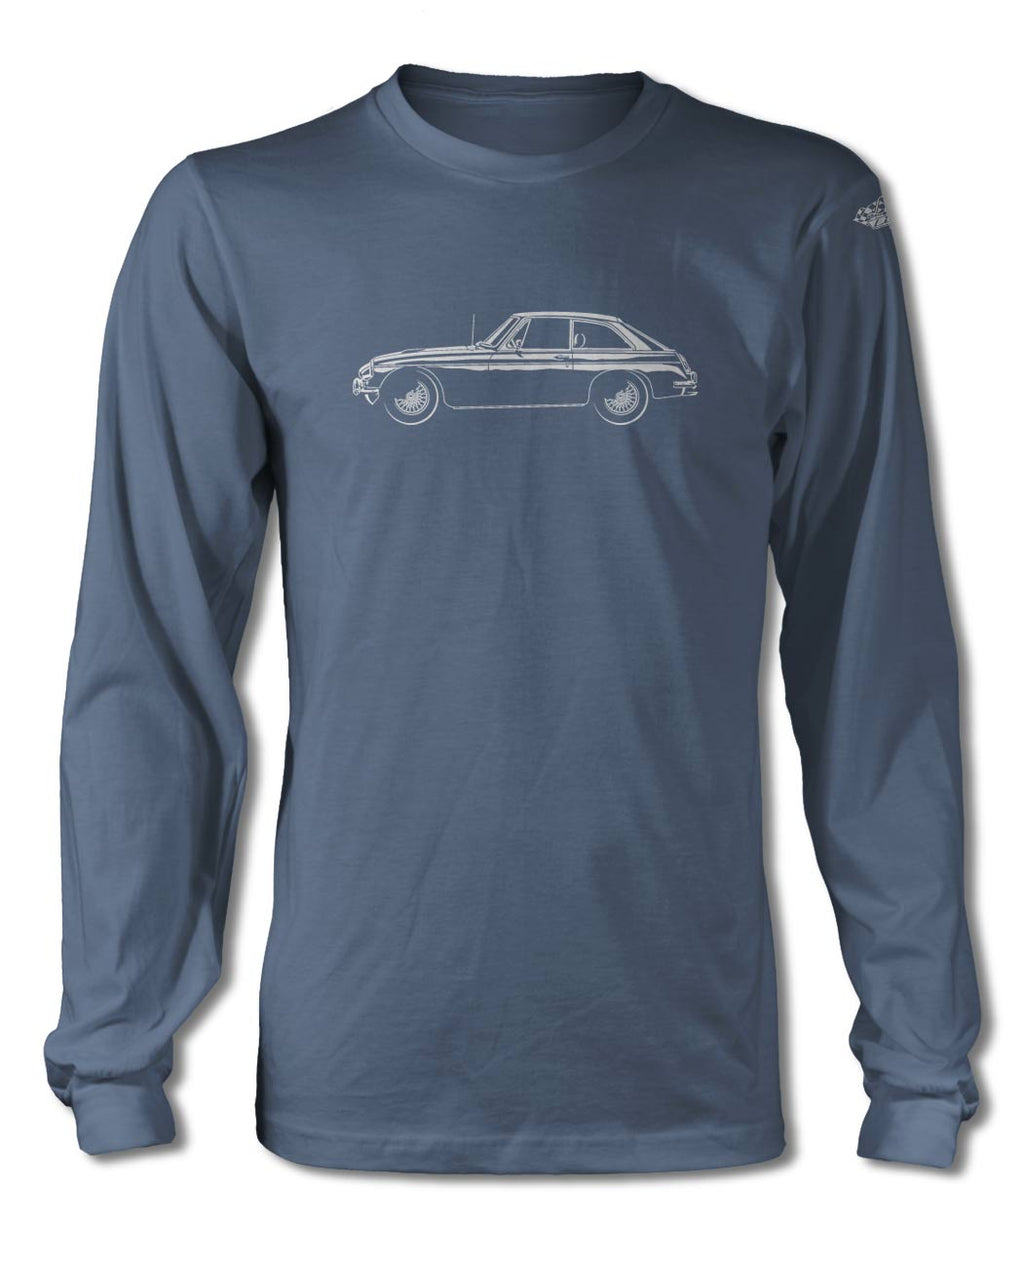 MG MGC GT Coupe T-Shirt - Long Sleeves - Side View